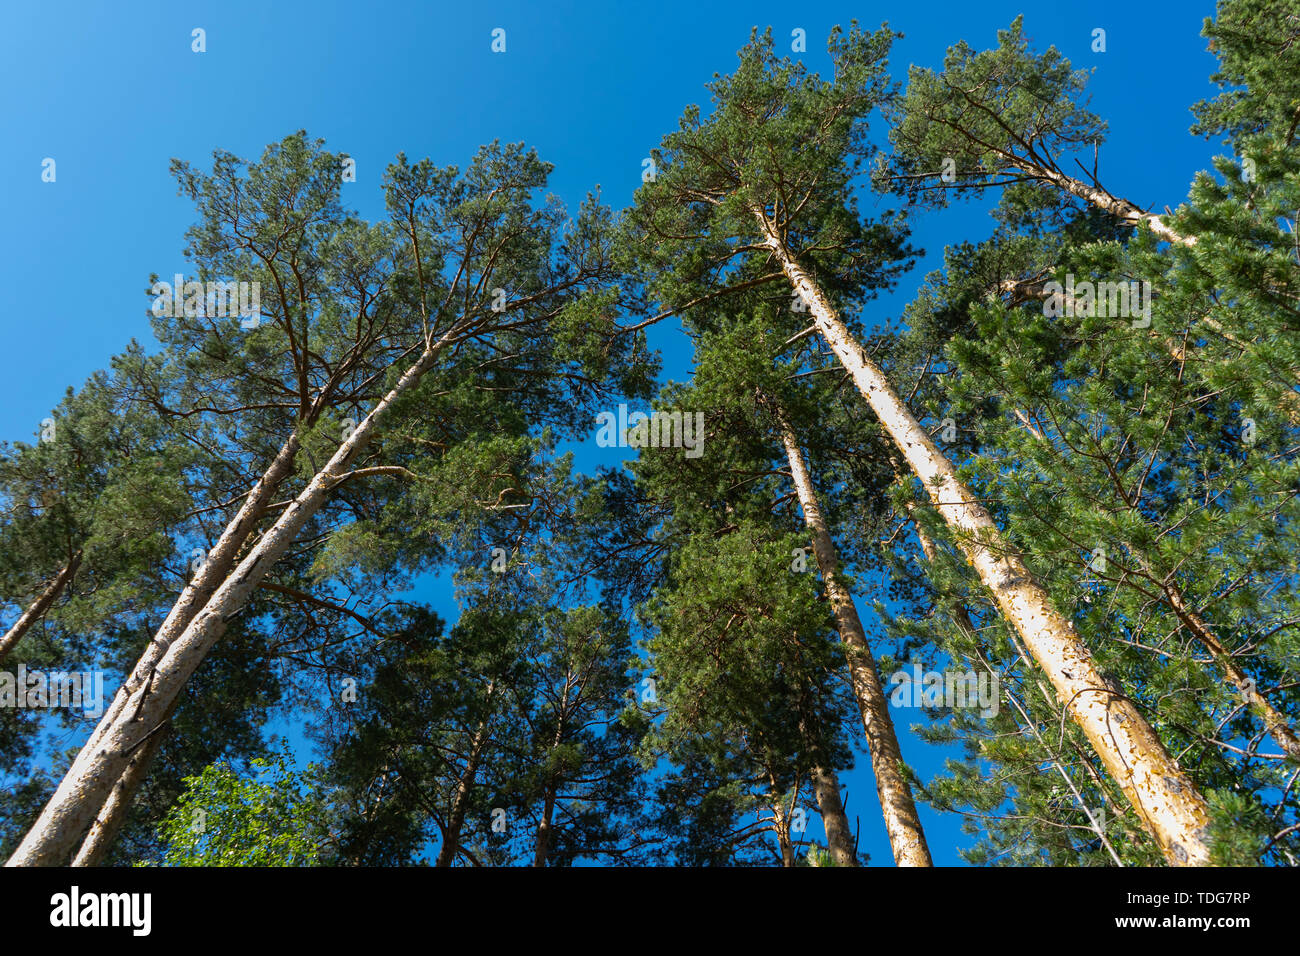 Tall pines and blue sky. High trunks of pines from the ground to the sky. Centered view with bright blue sky background. Pines for construction Stock Photo